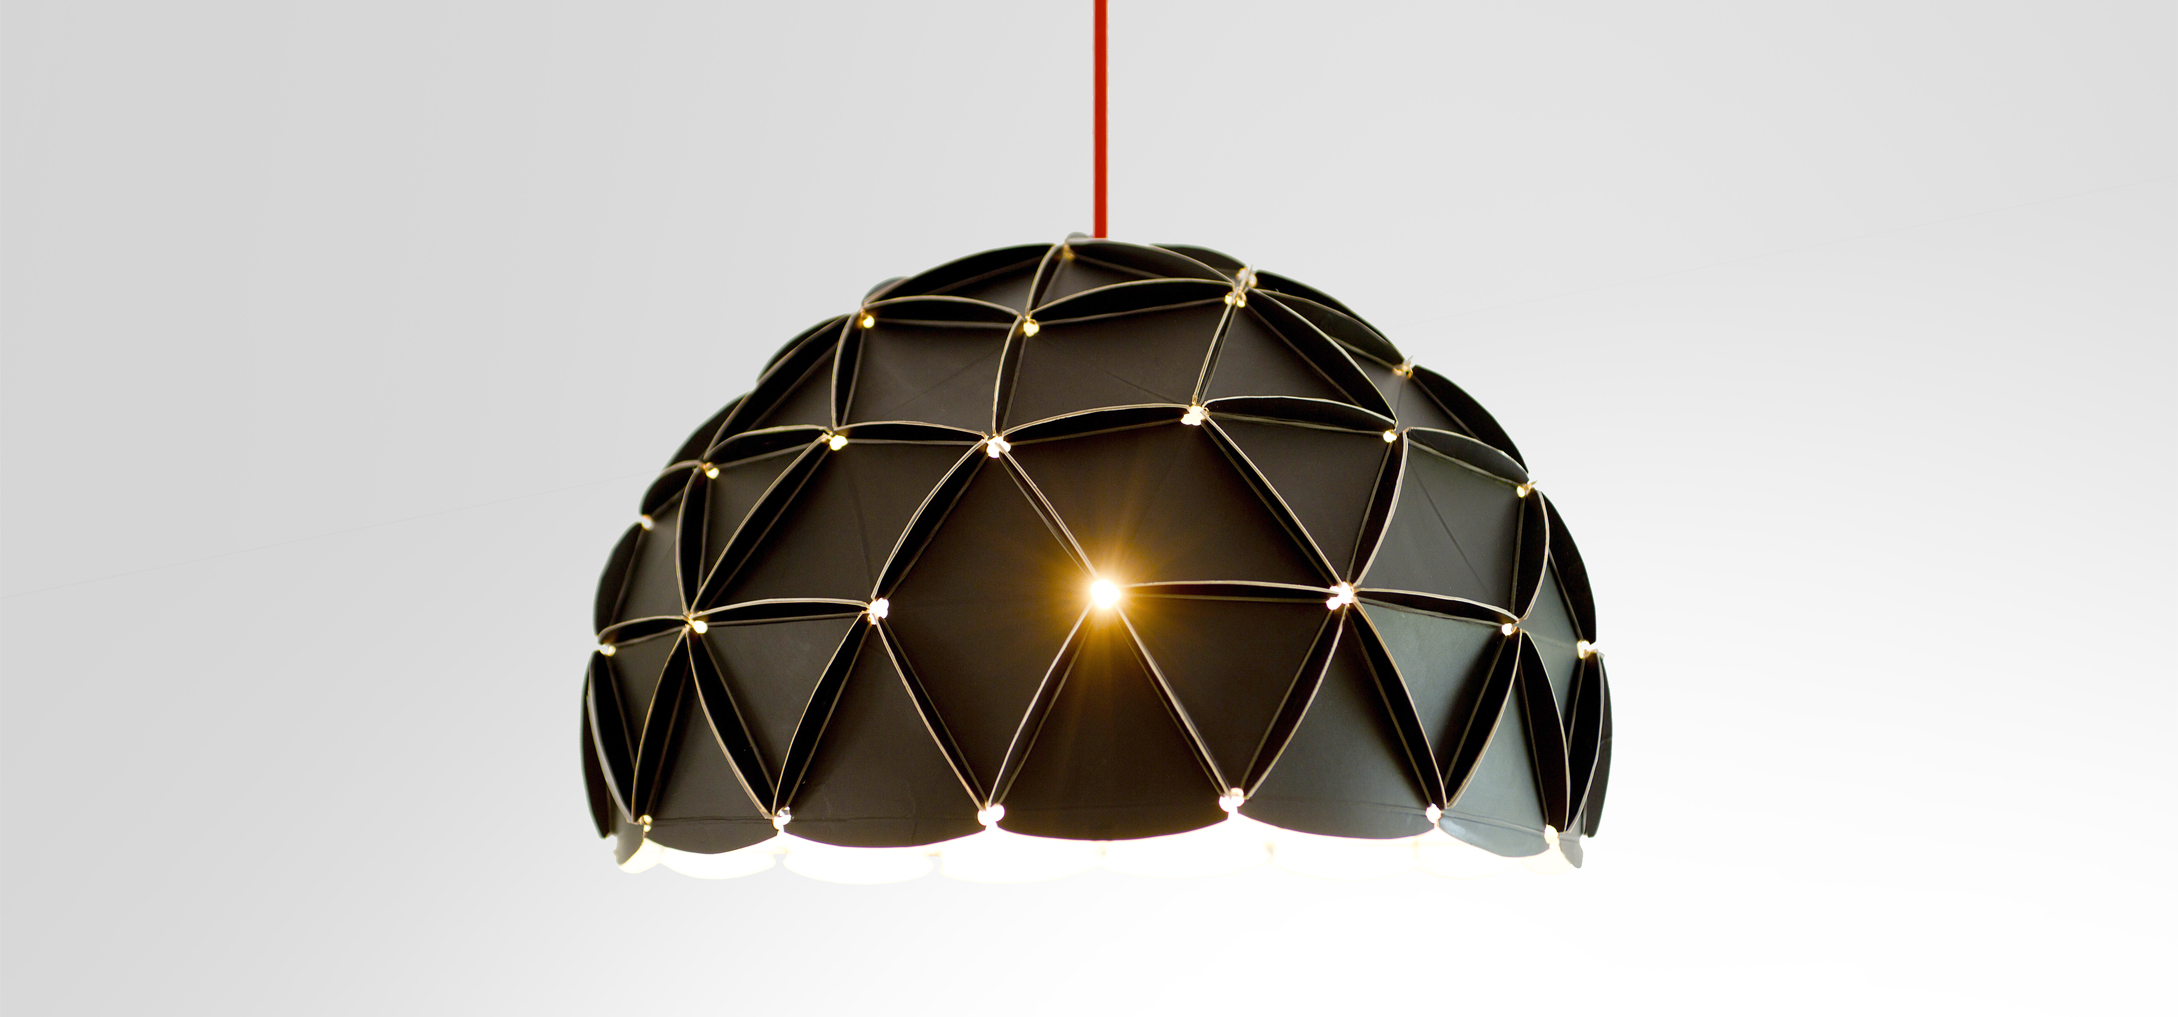 unistudio_merci_lampe_recyclee_design_image-de-communication_01